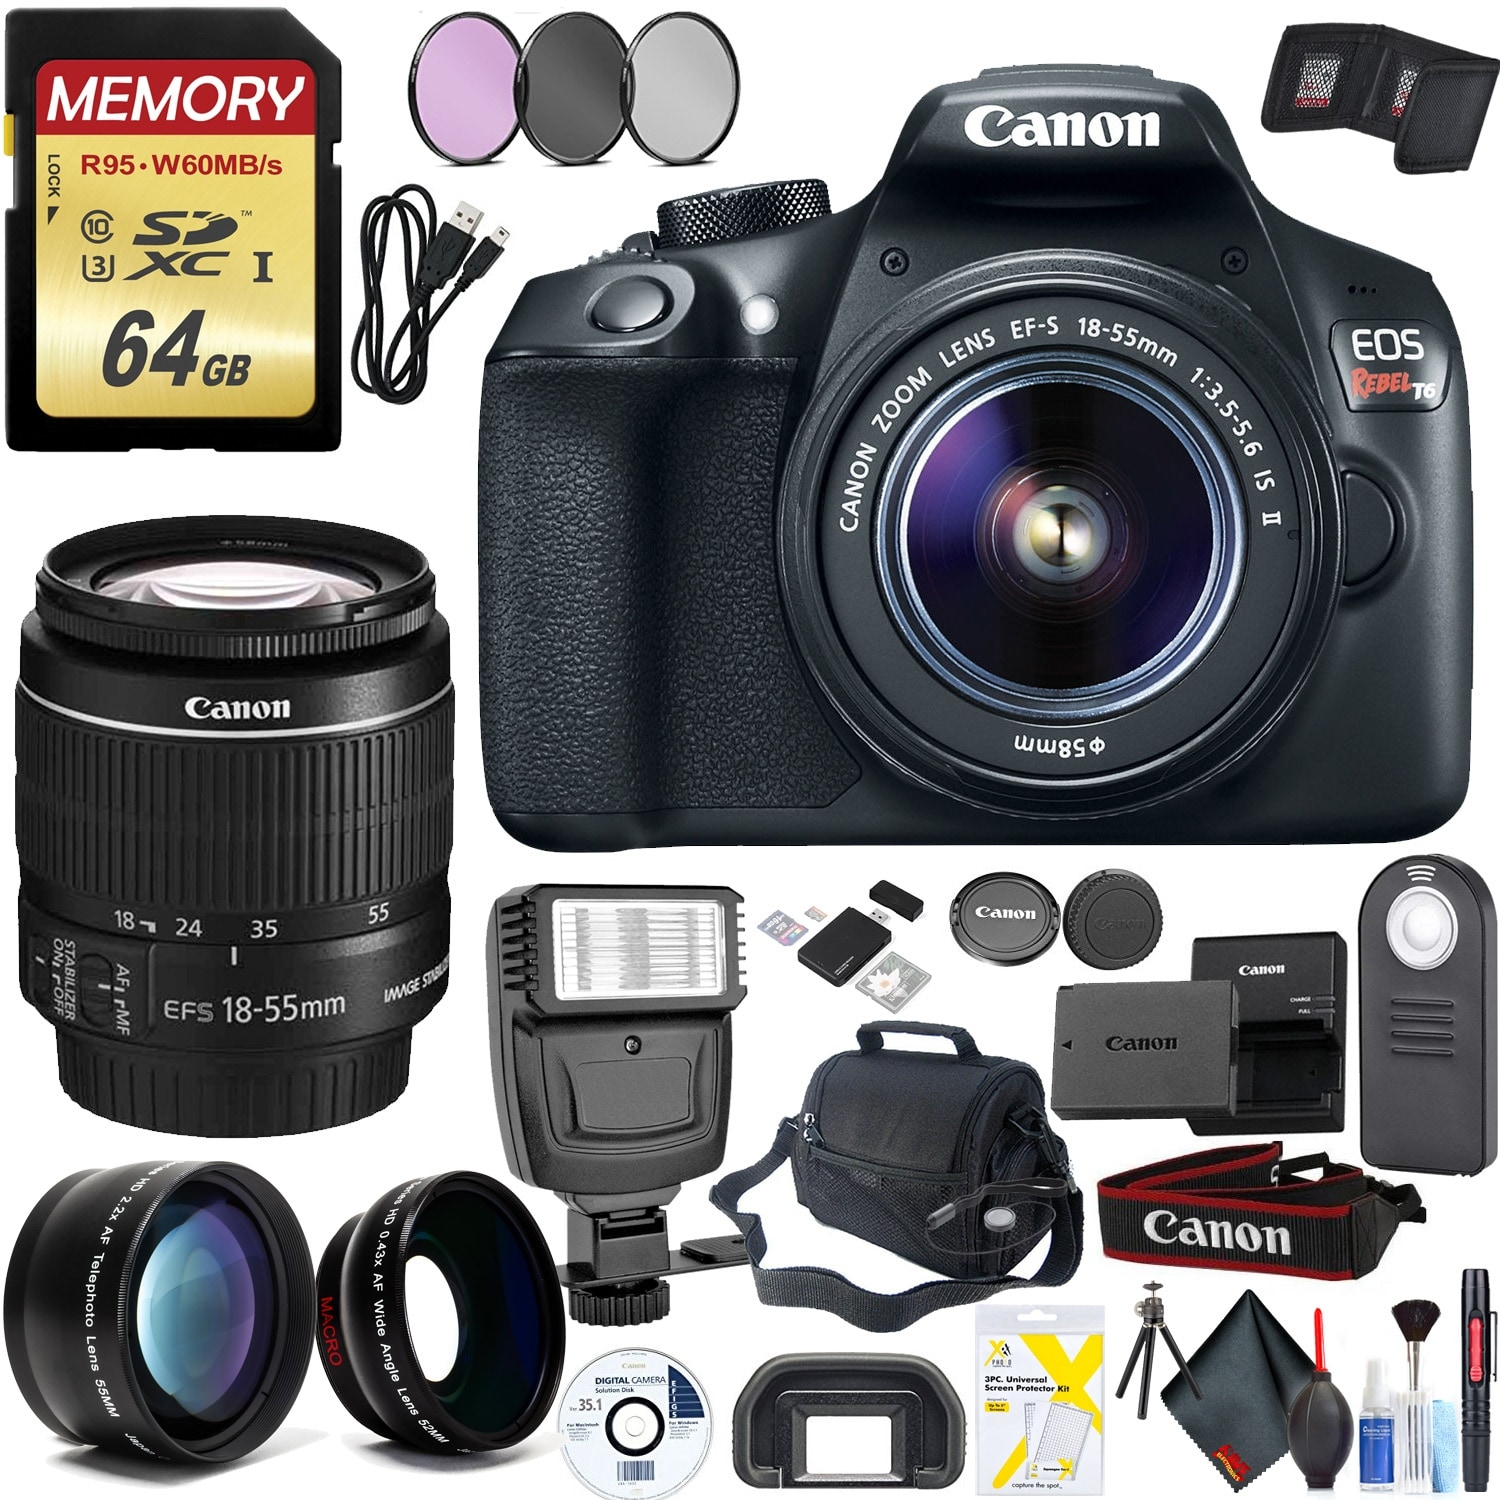 Canon Rebel T6 DSLR Camera & 18-55mm Lens Combo